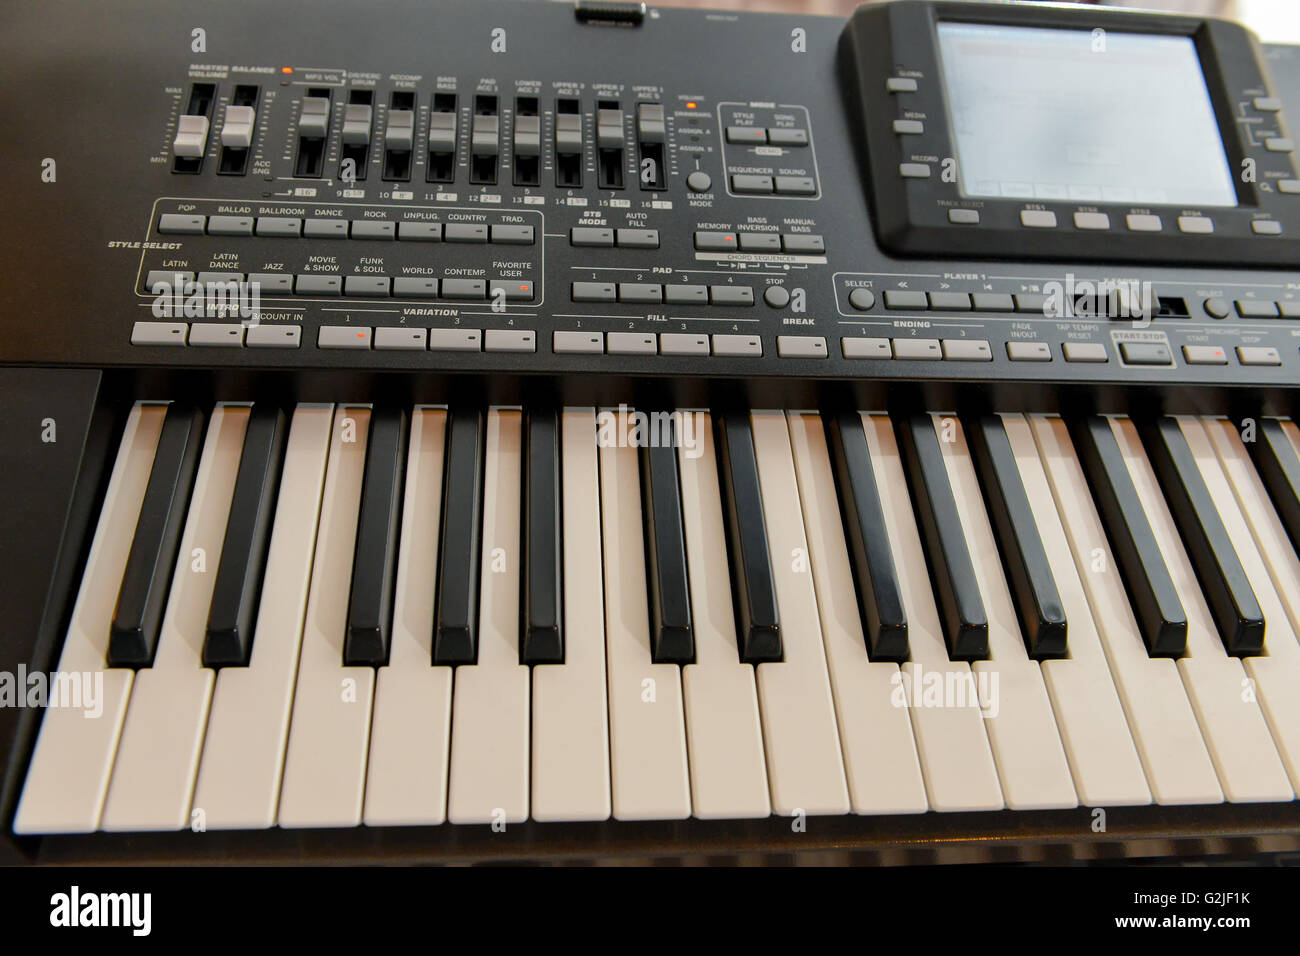 Music workstation synthesizer with digital display and side light - Stock Image